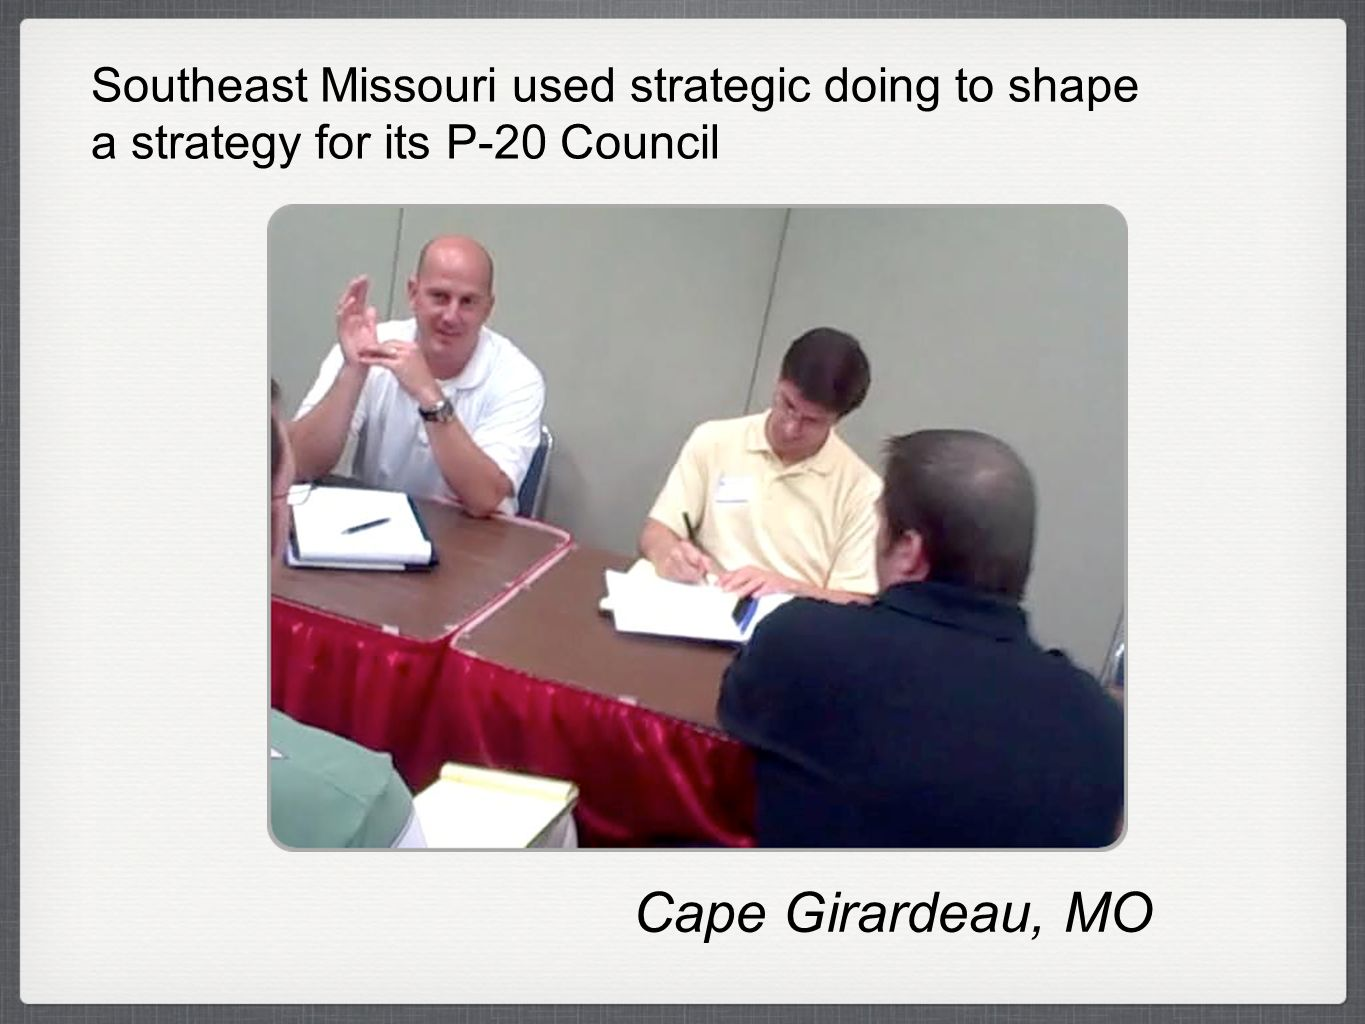 Cape Girardeau, MO Southeast Missouri used strategic doing to shape a strategy for its P-20 Council